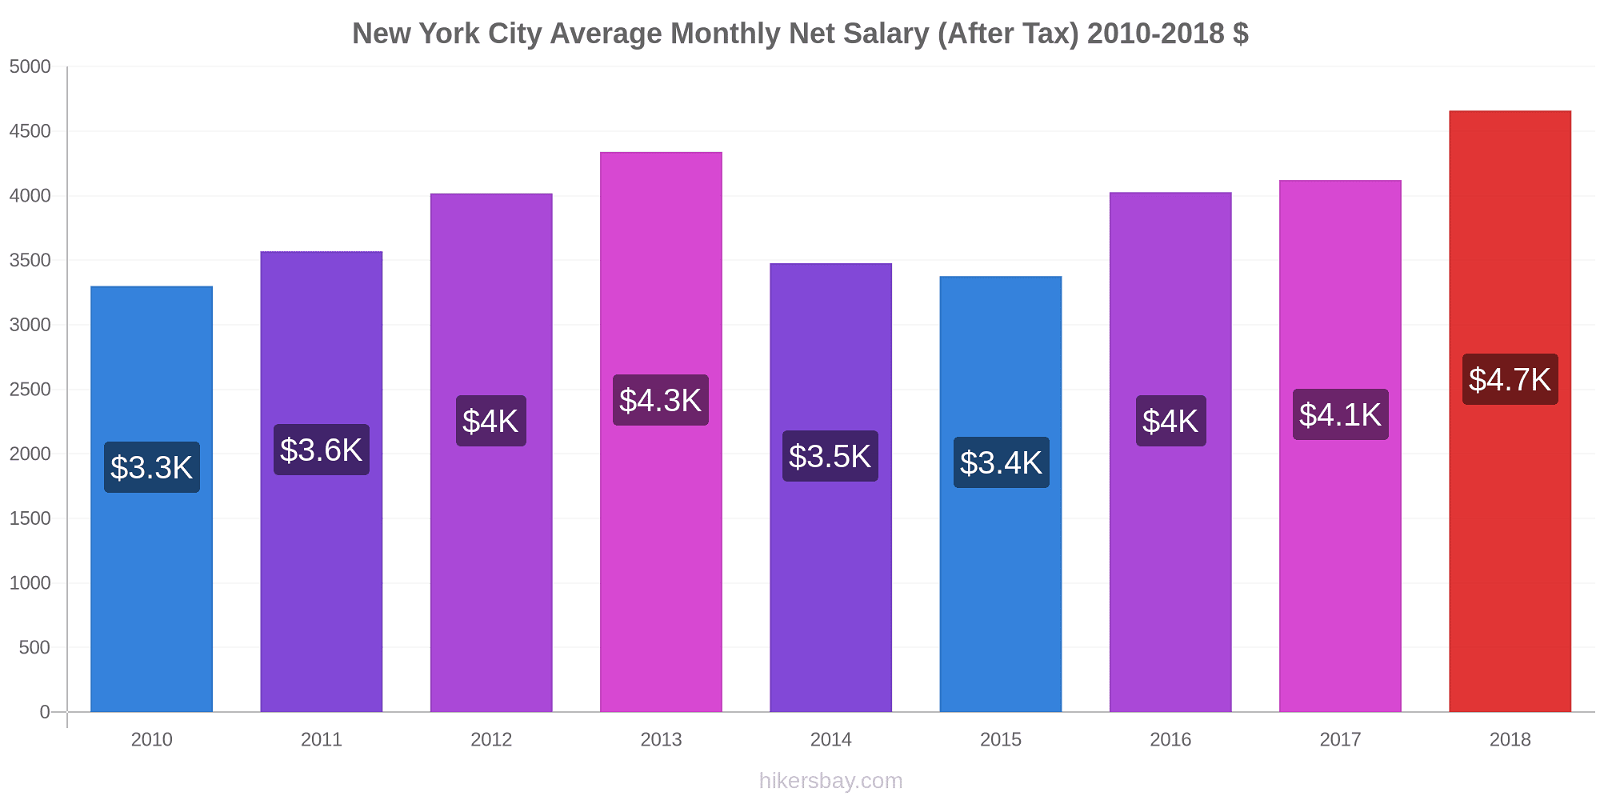 New York City price changes Average Monthly Net Salary (After Tax) hikersbay.com